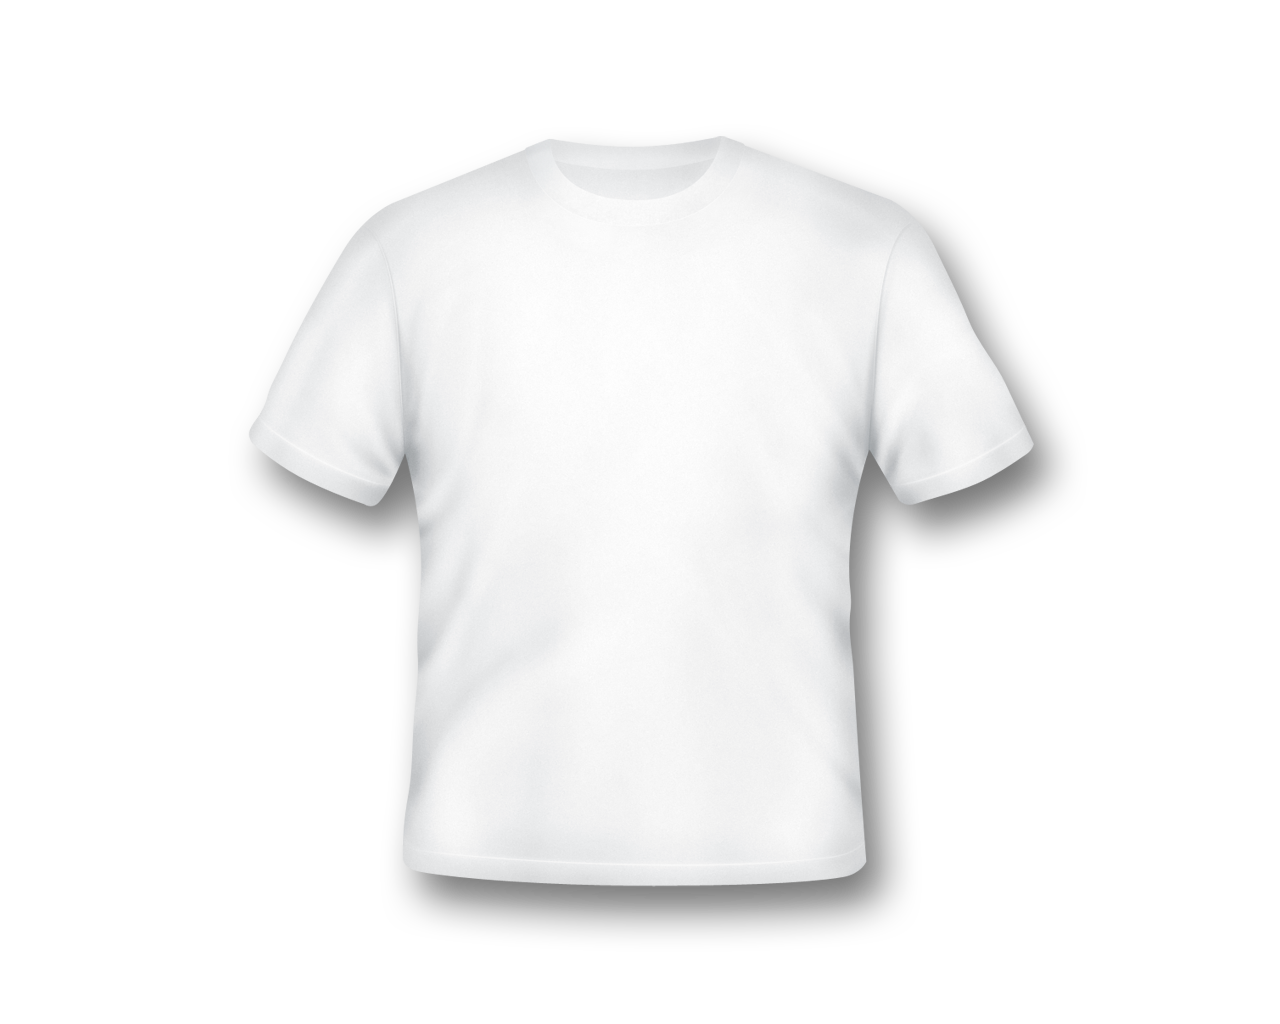 Clipart Best Blank T Shirt Png #30252.